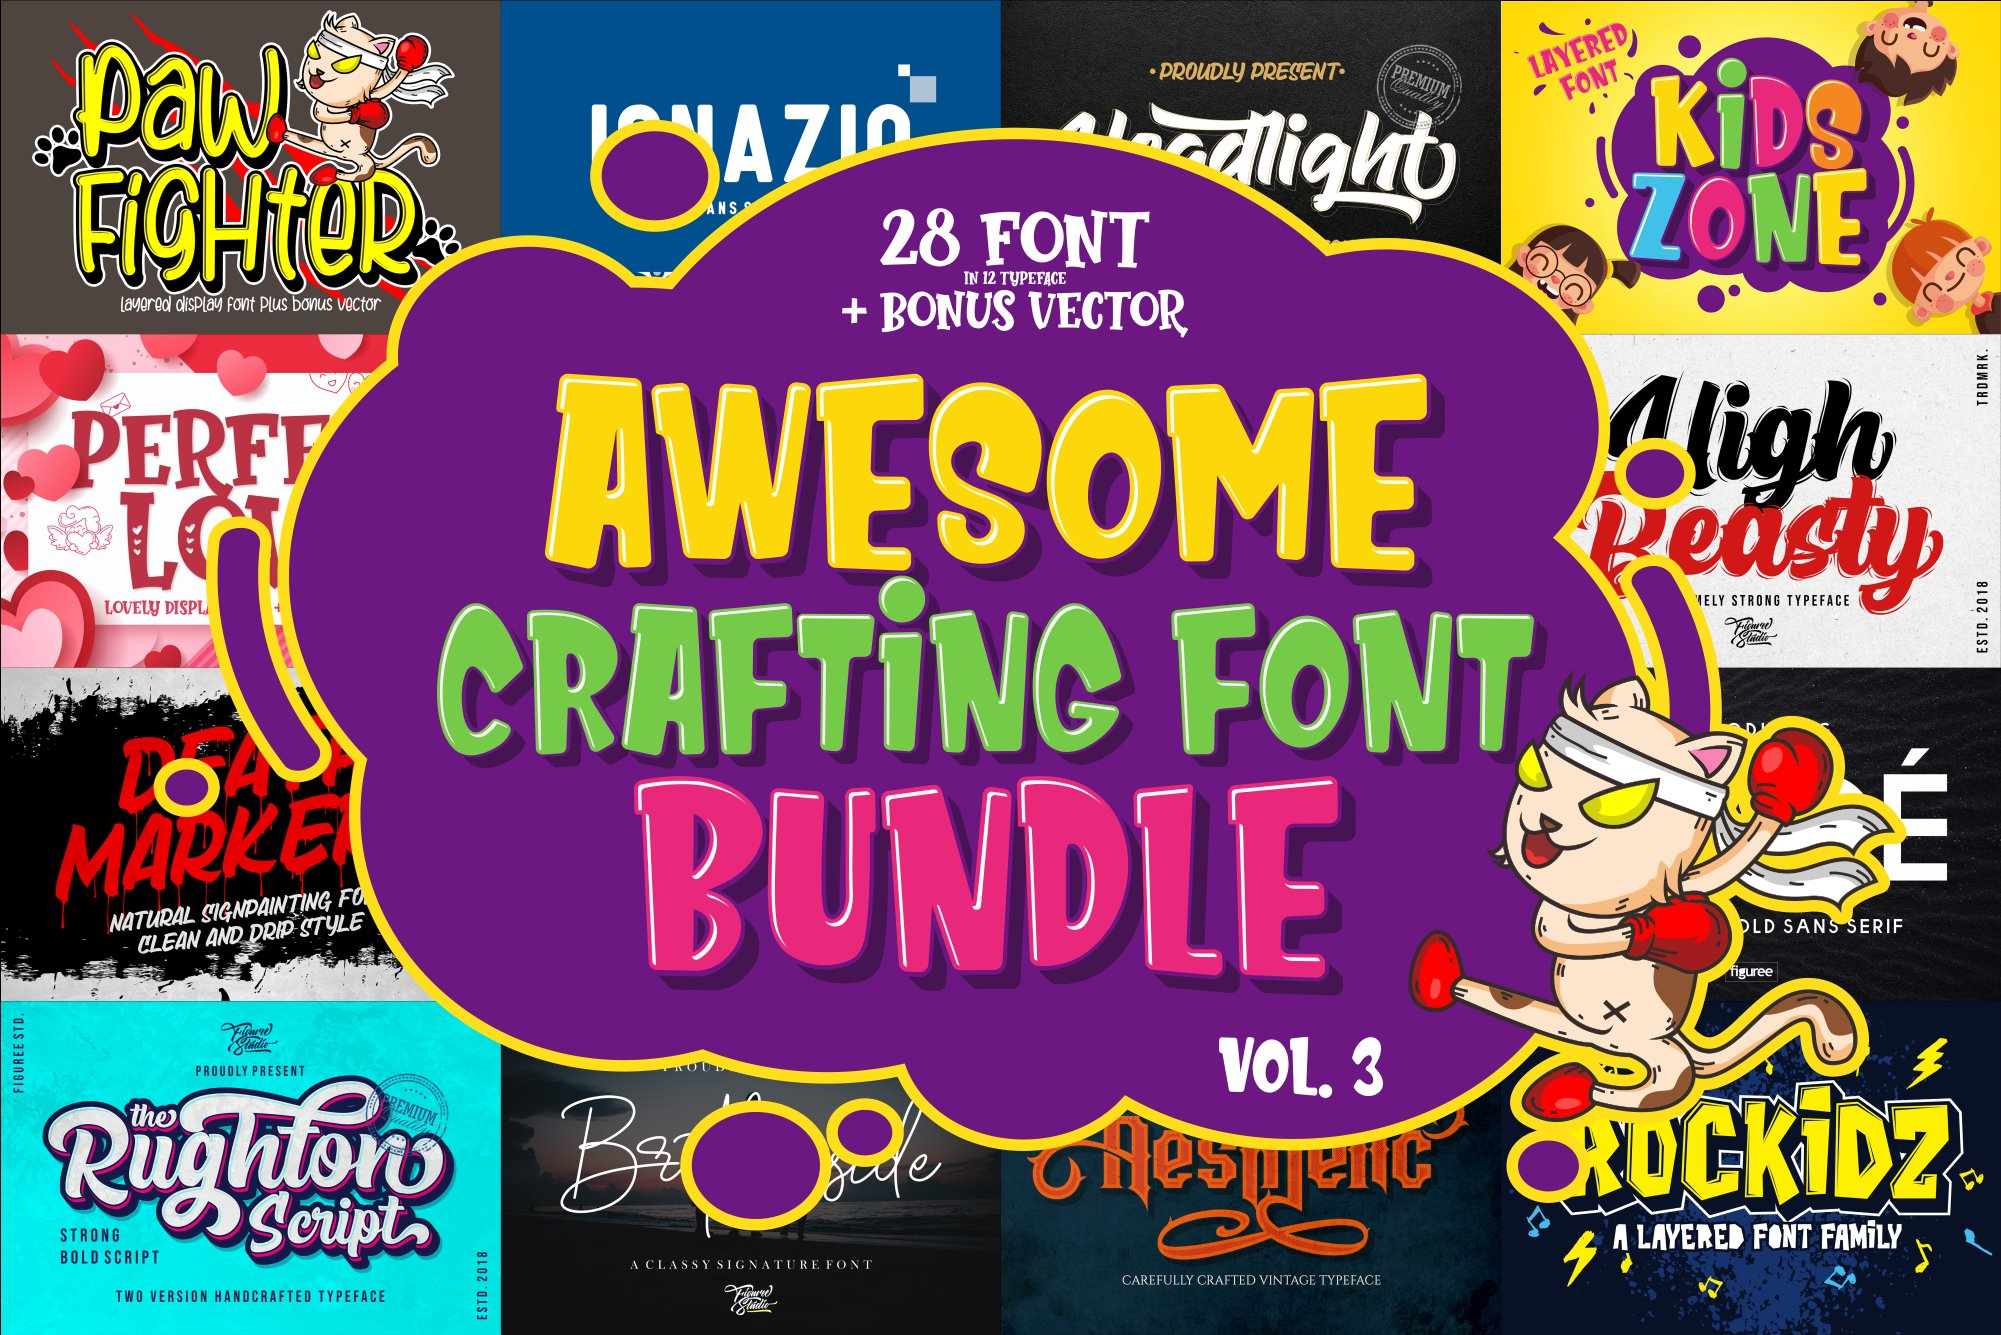 Awesome Crafting Font Bundle Vol. 3 example image 1